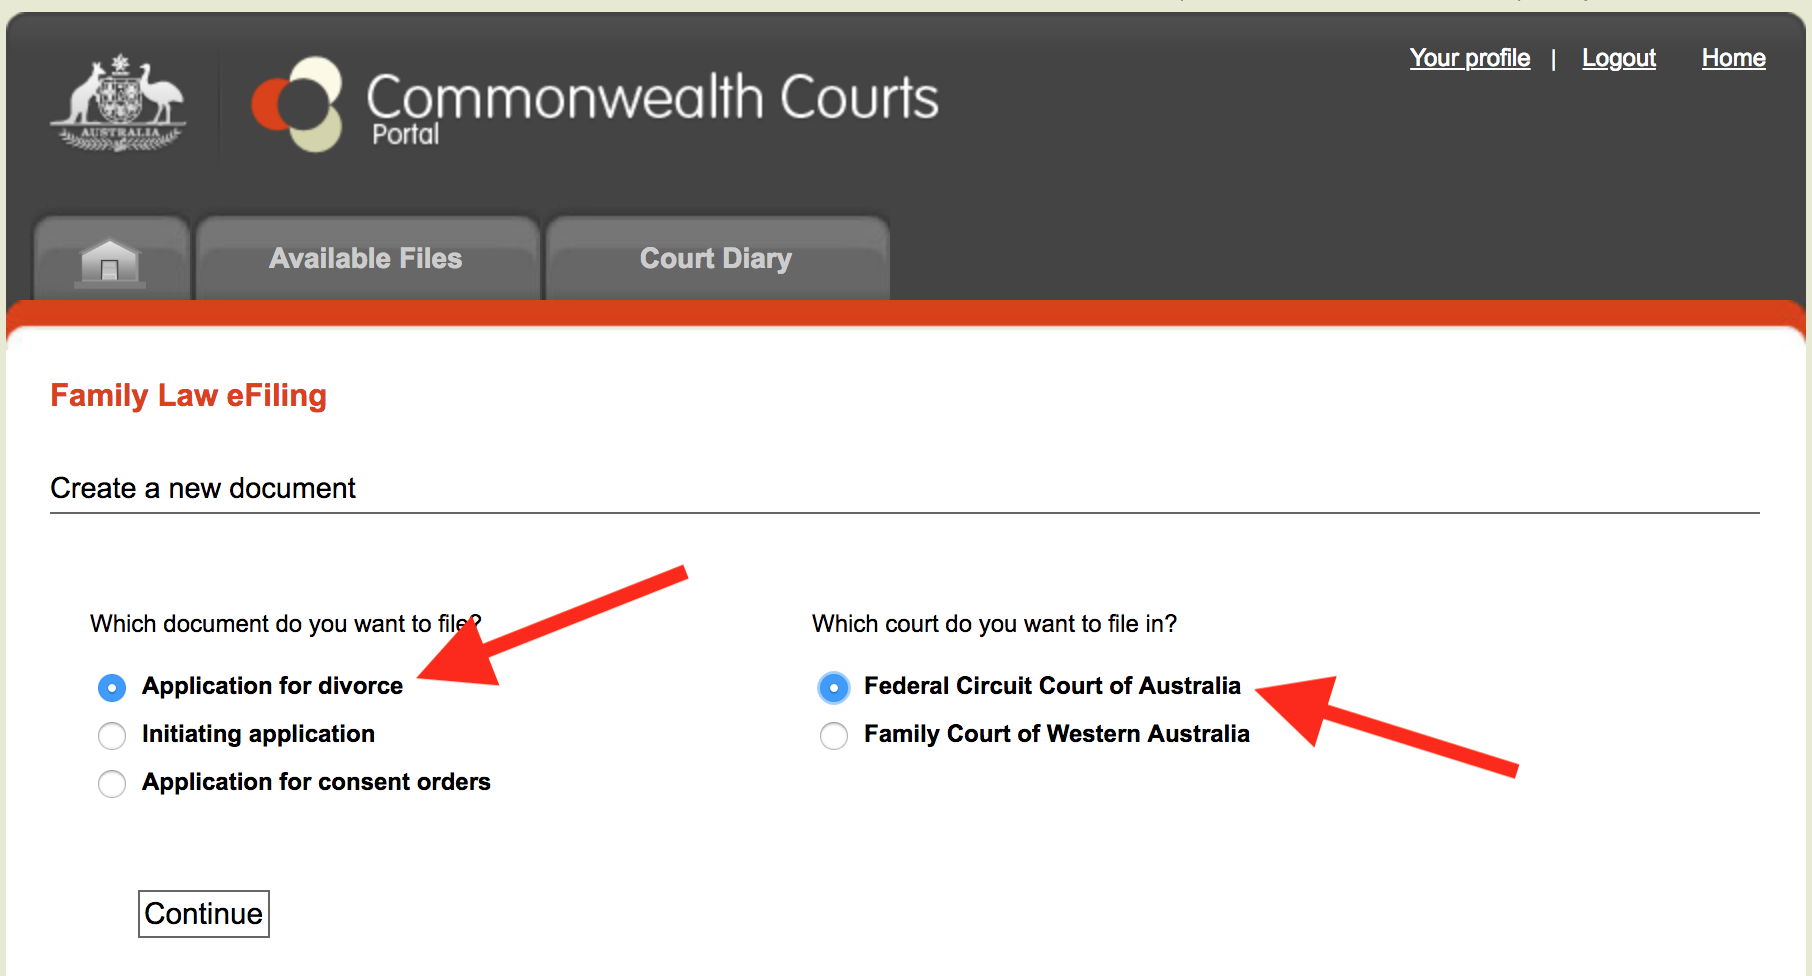 New document commonwealth courts portal